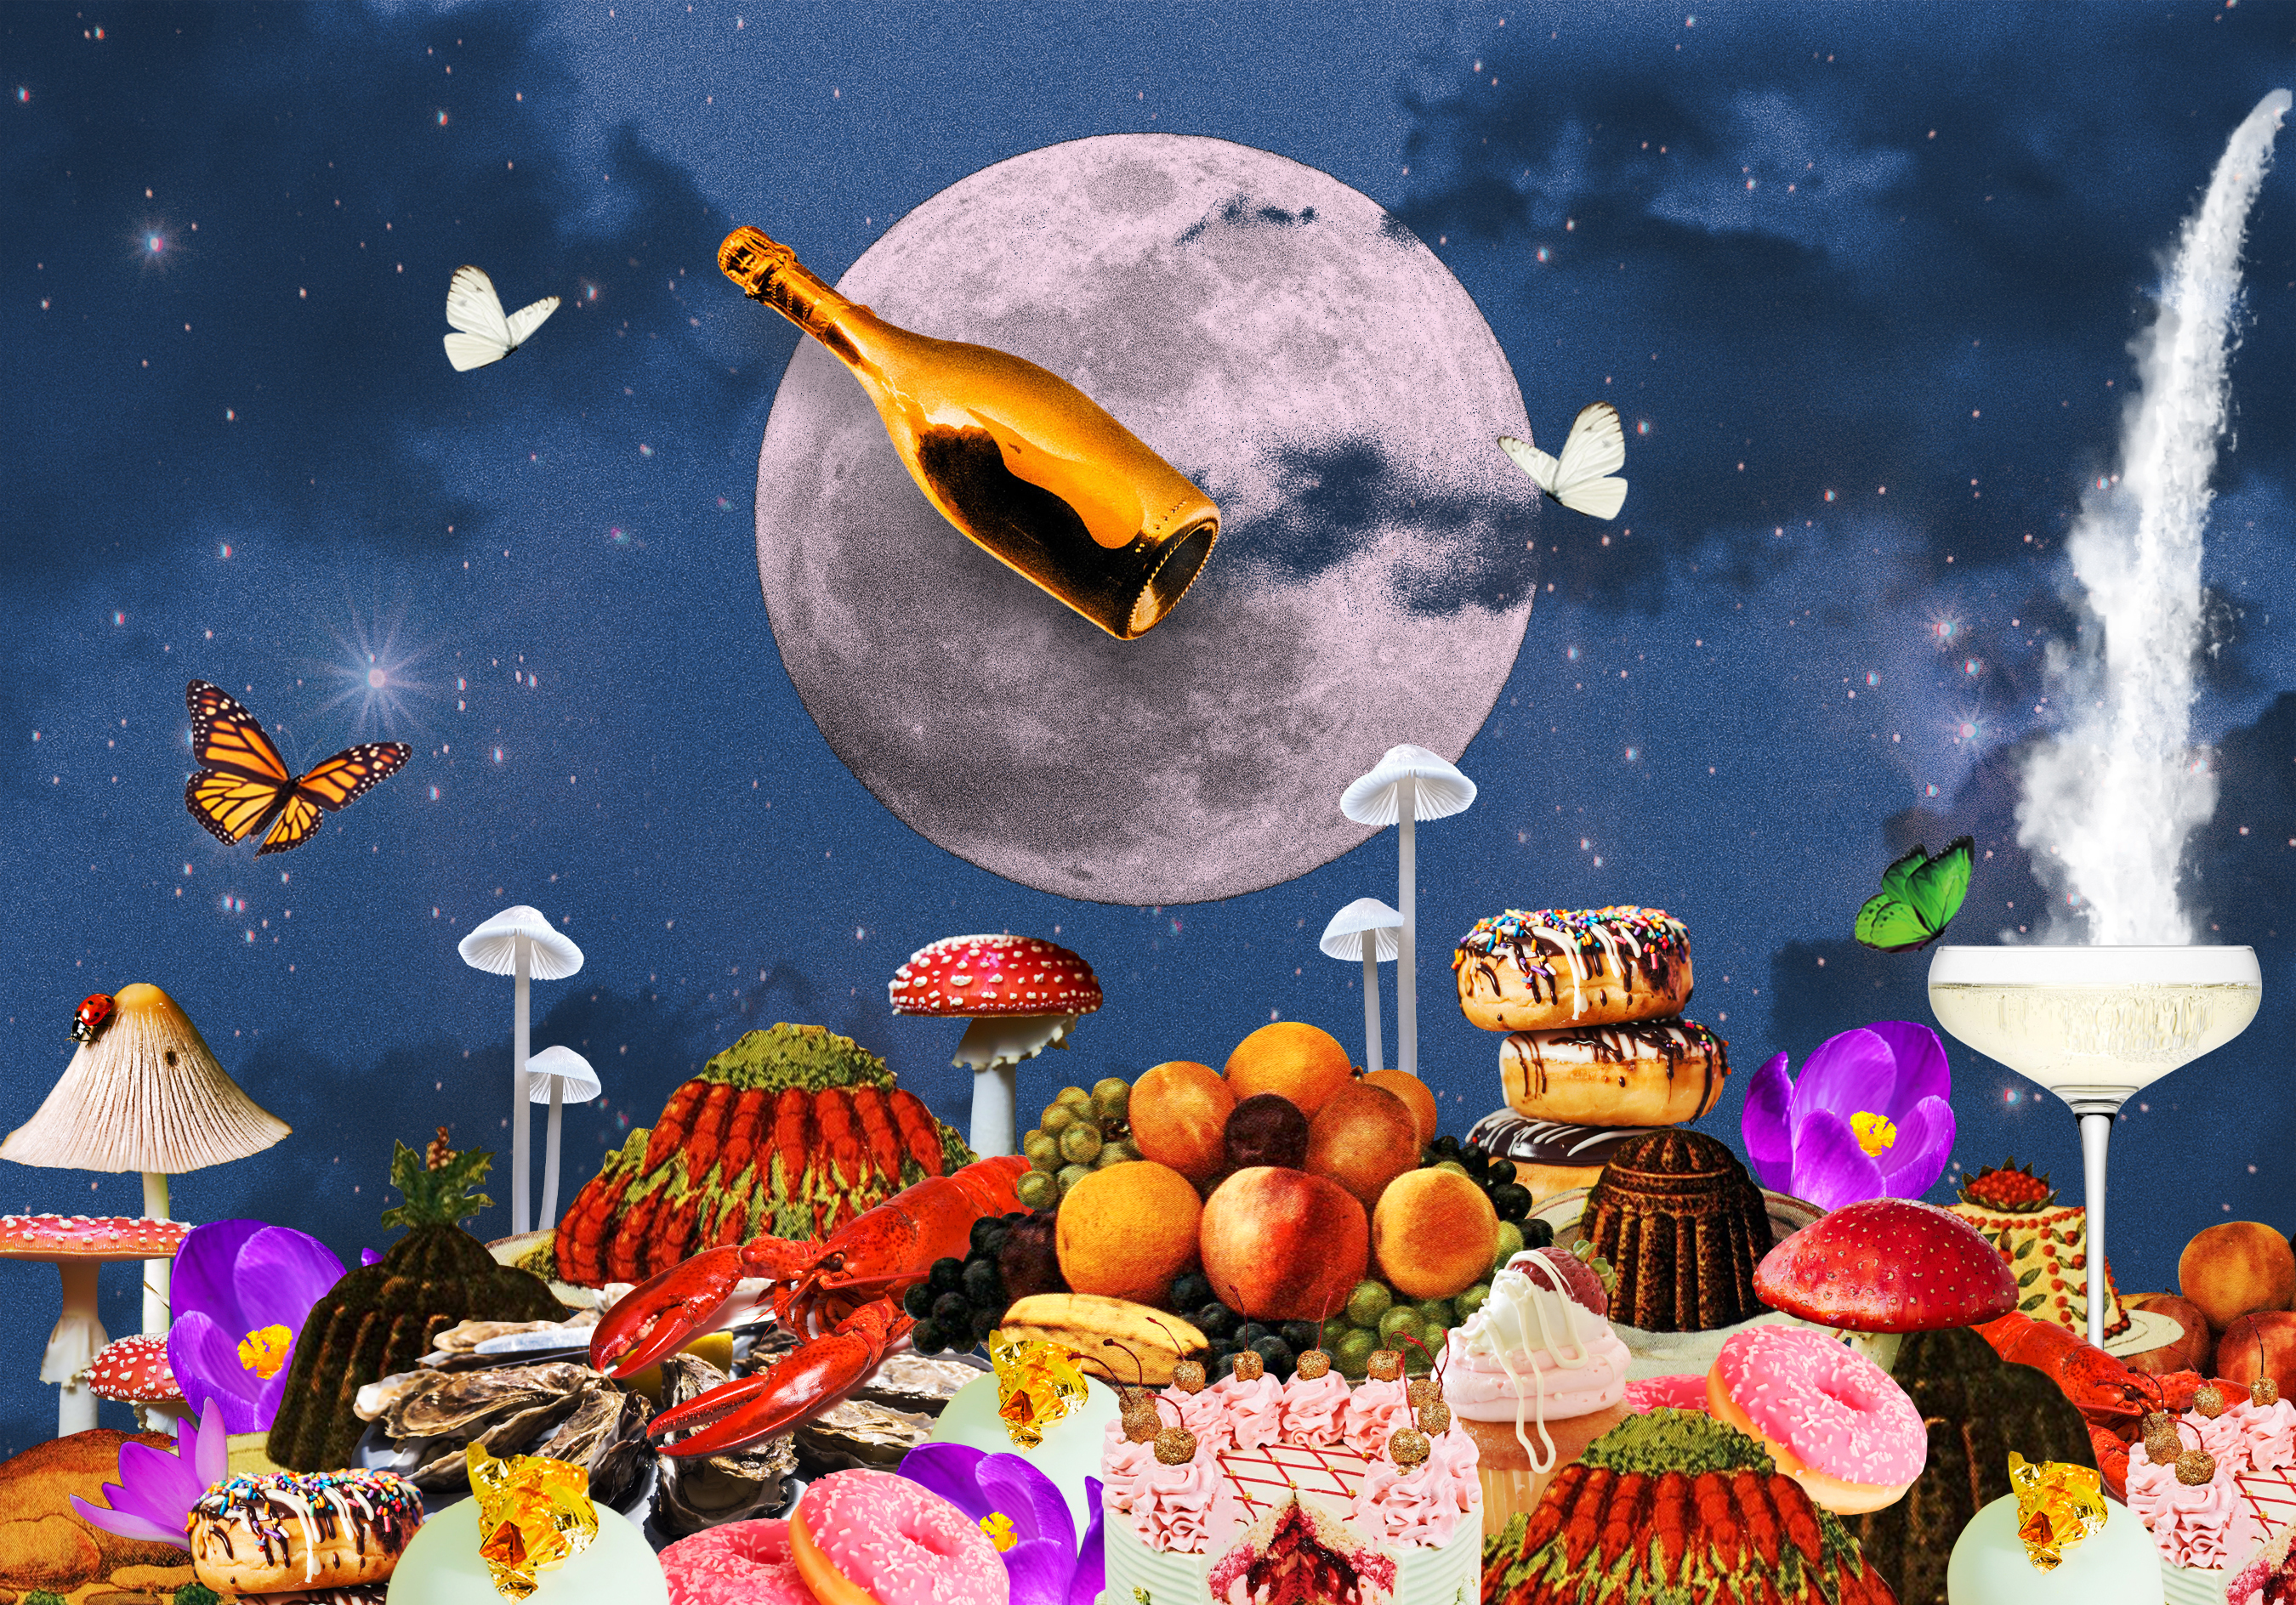 An impressionistic illustration of a full moon on a night sky, with a cornucopia of Alice in Wonderland-like food in front.